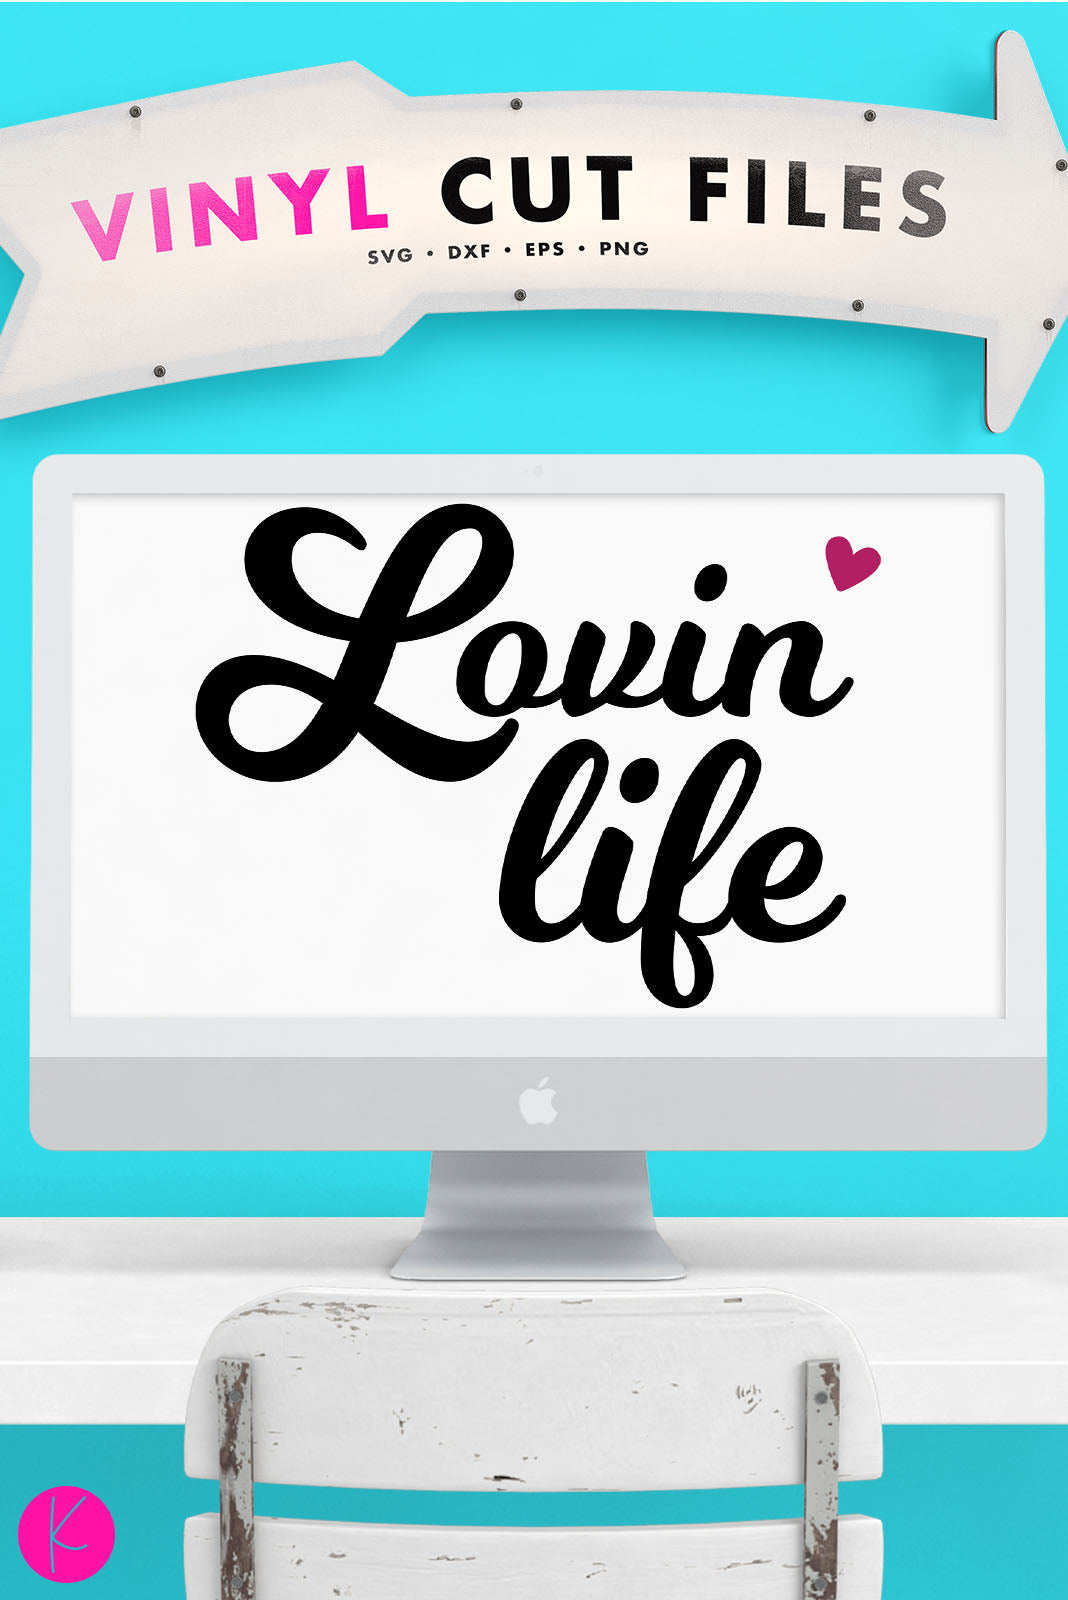 Lovin' Life | SVG DXF EPS PNG Cut Files Retro Style Lovin' Life Quote with Heart | SVG DXF EPS PNG Cut Files  1 file for each format lettering and heart welded separately